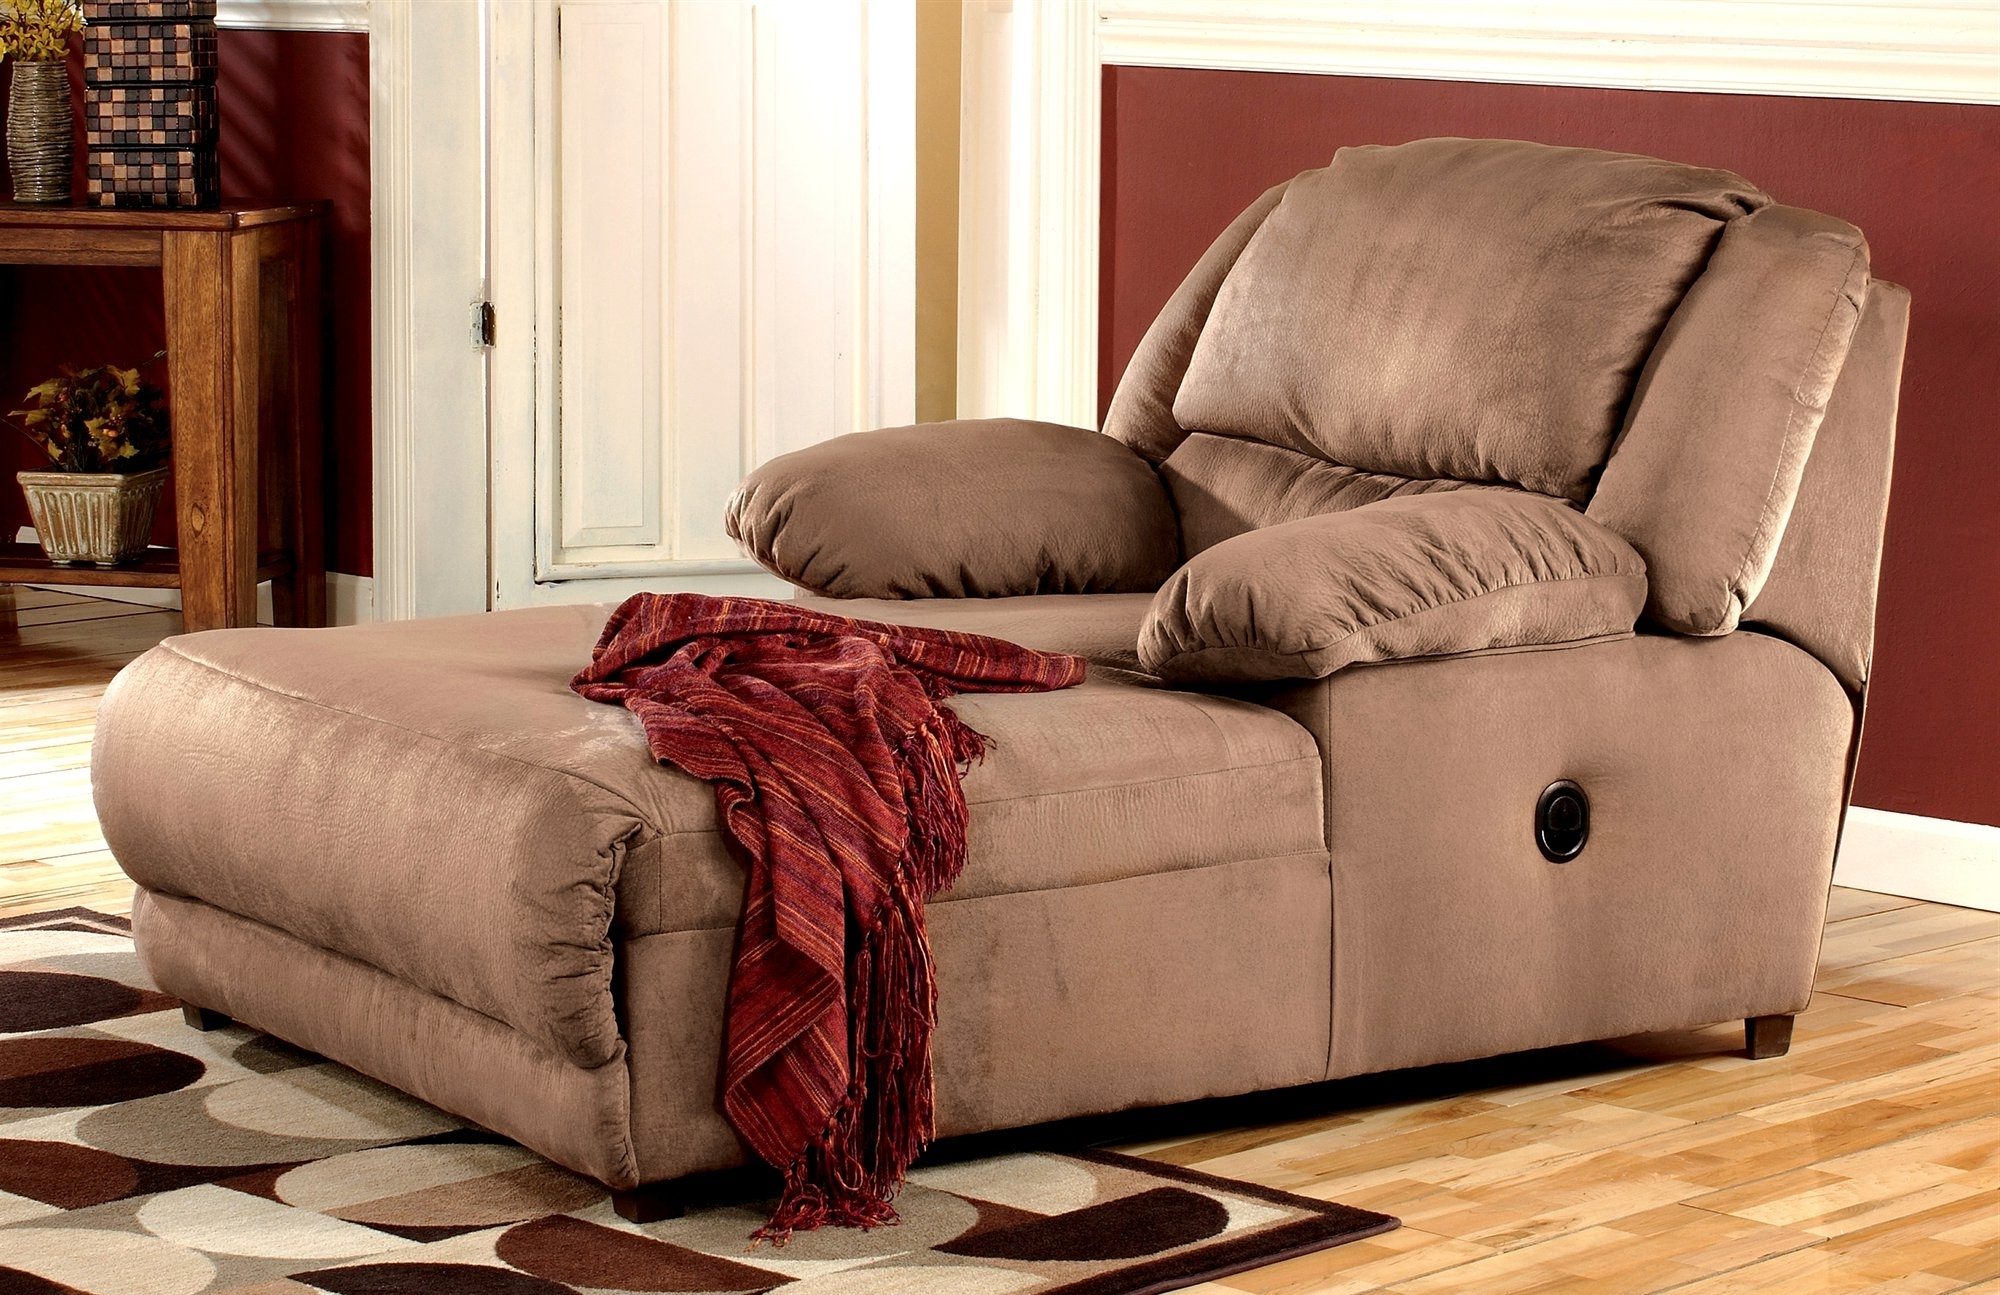 Indoor Chaise Lounge Chairs With Well Liked Indoor Chaise Lounge Chair (Gallery 1 of 15)